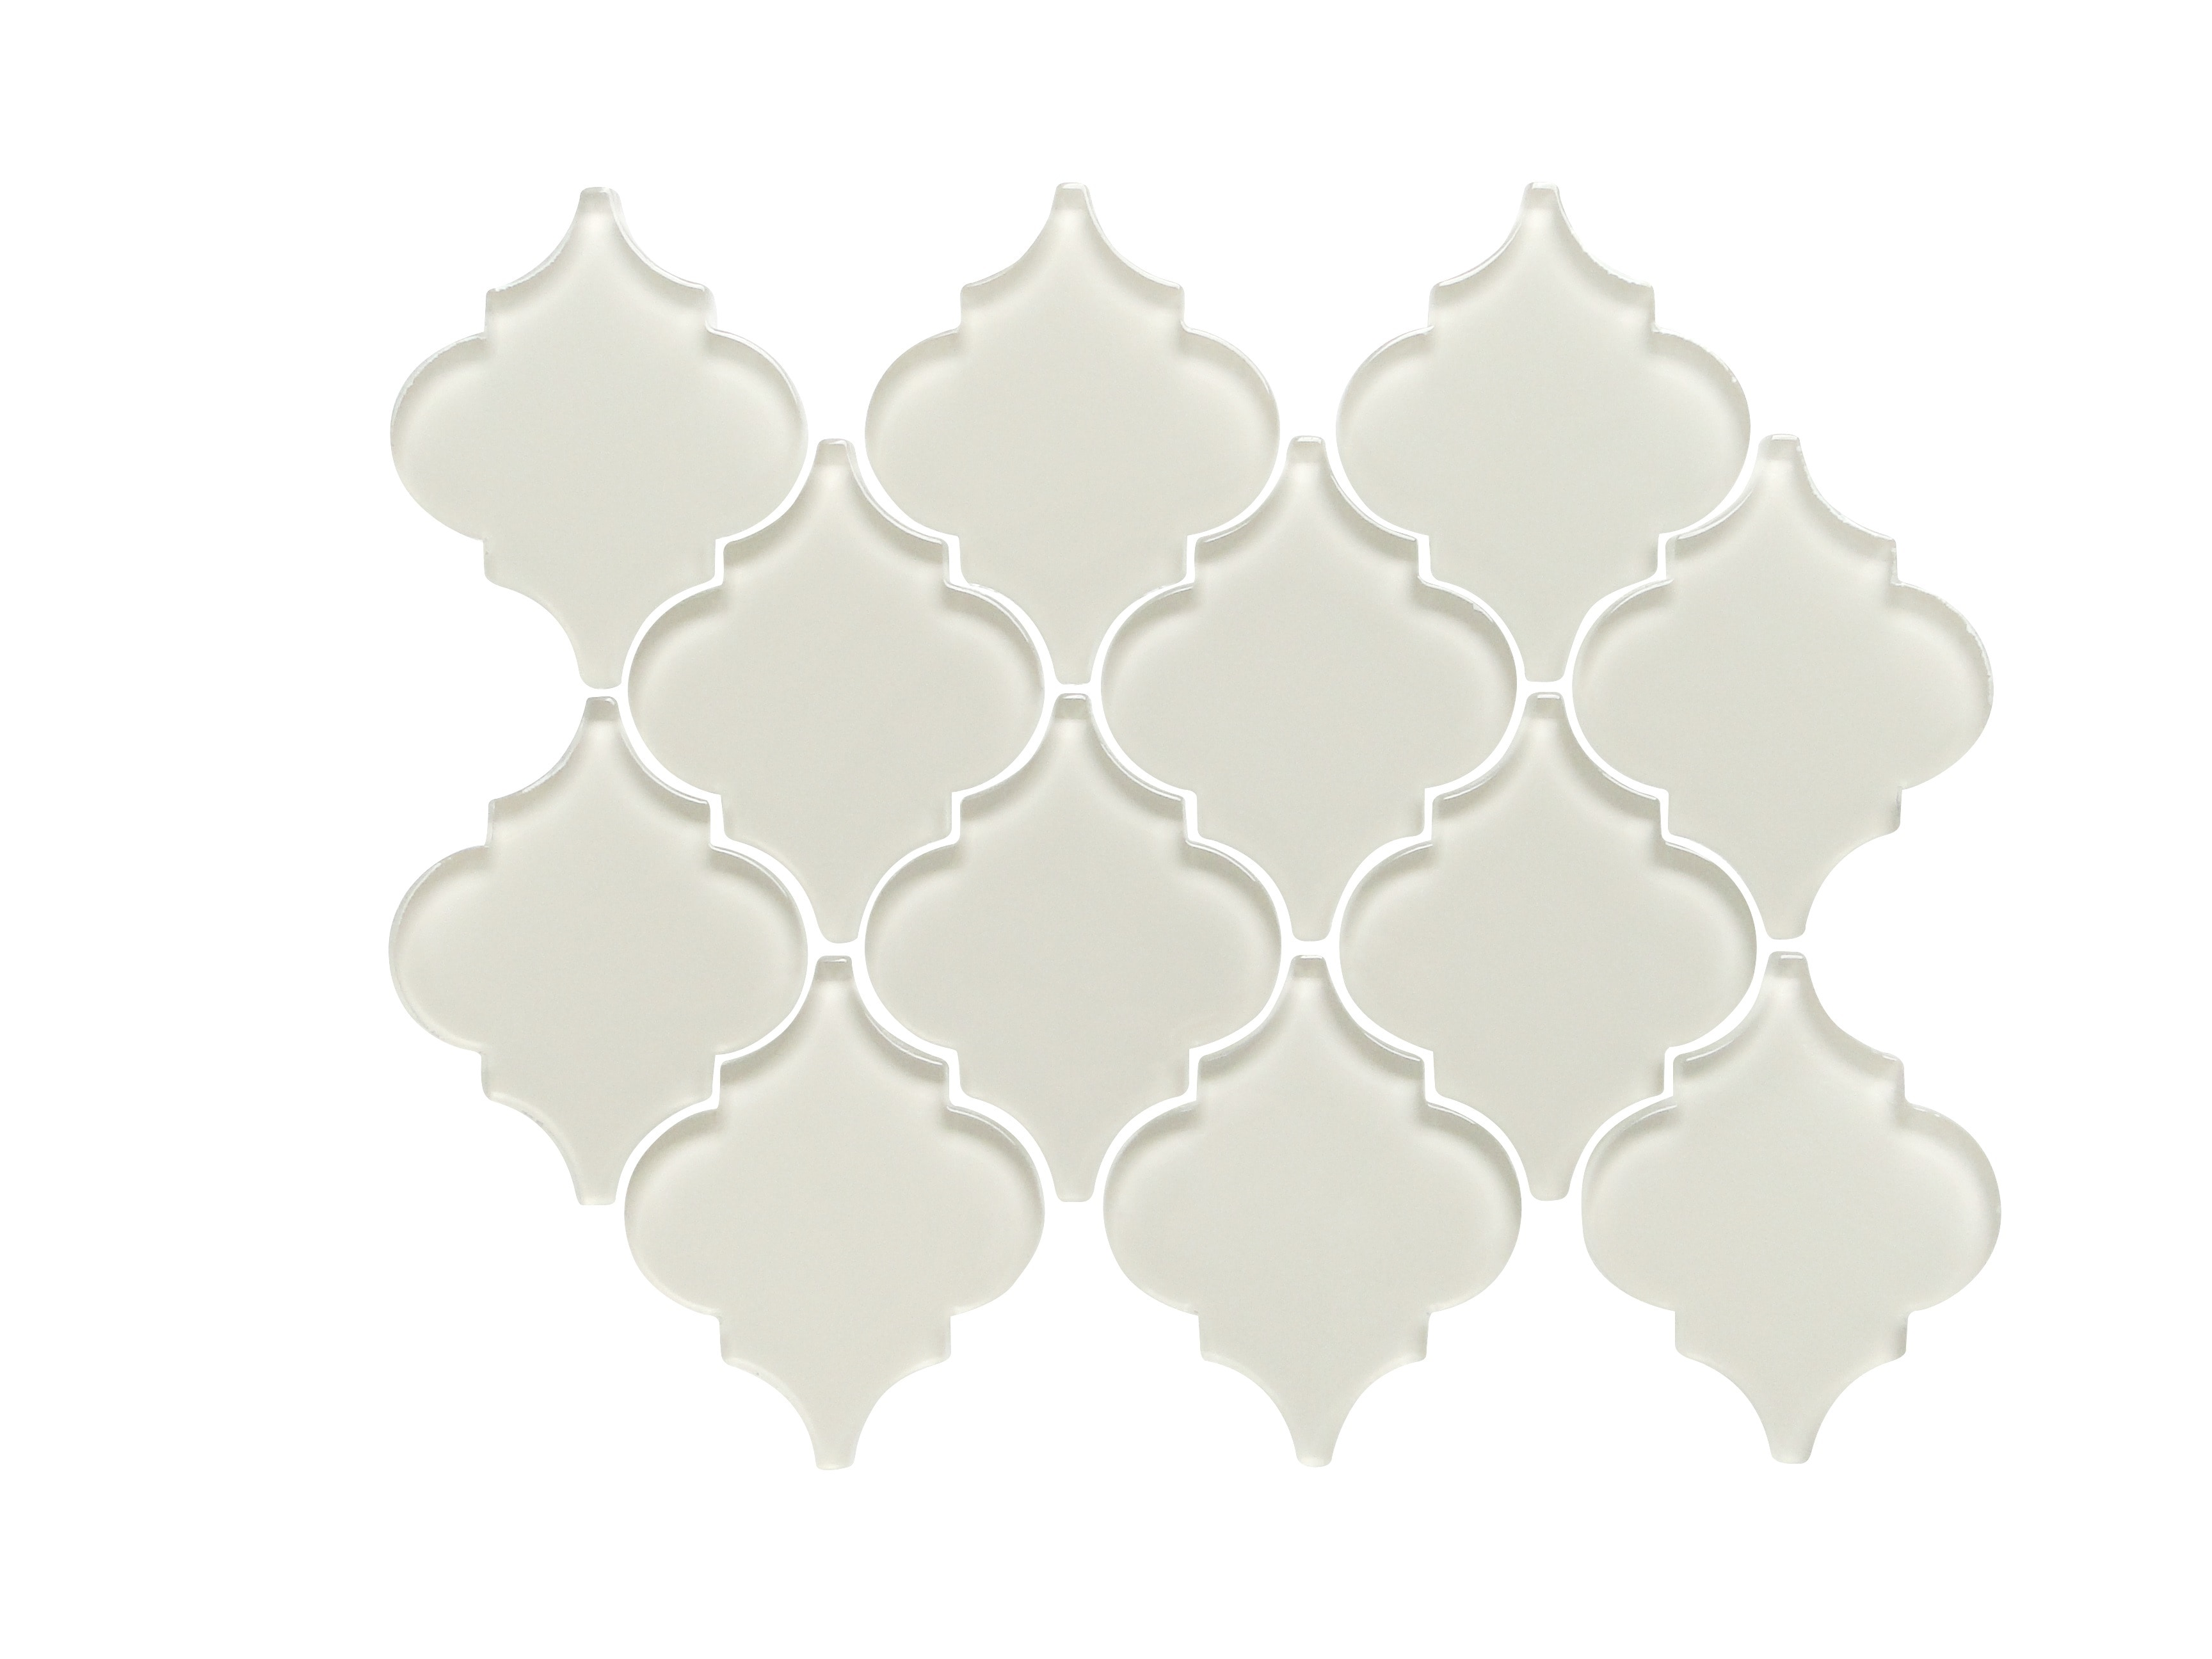 Glass Mosaic / 12 x 12 x 0.31 inches / Glossy Lantern Arabesque Glass Mosaic Tile In Icy Gray 0